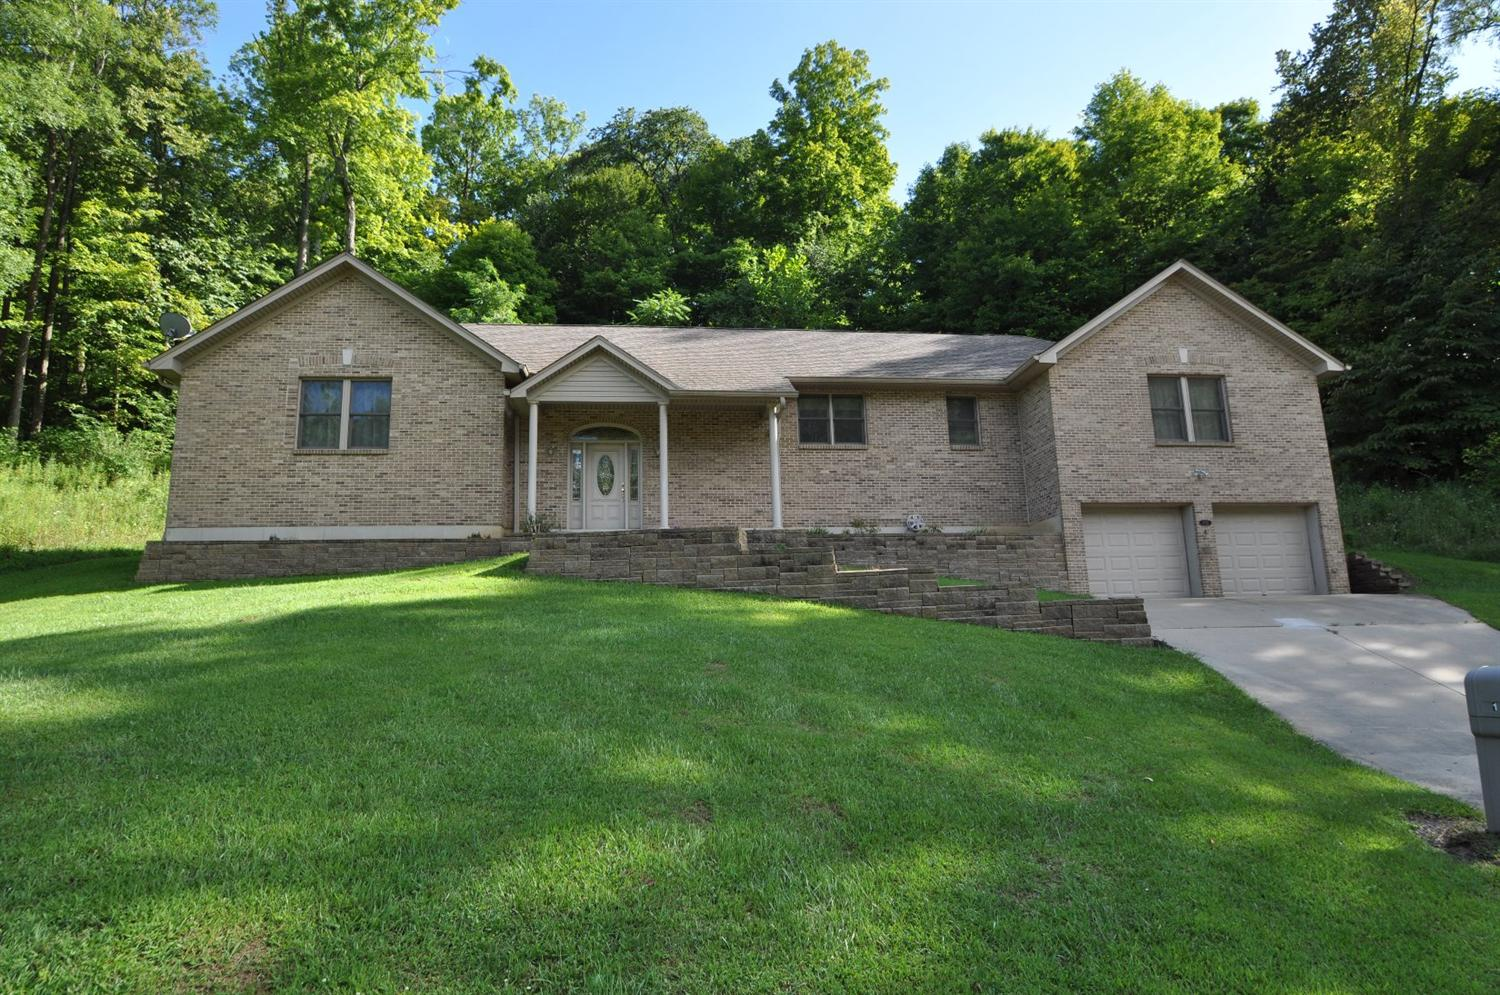 Real Estate for Sale, ListingId: 35258667, Ft Mitchell,KY41017